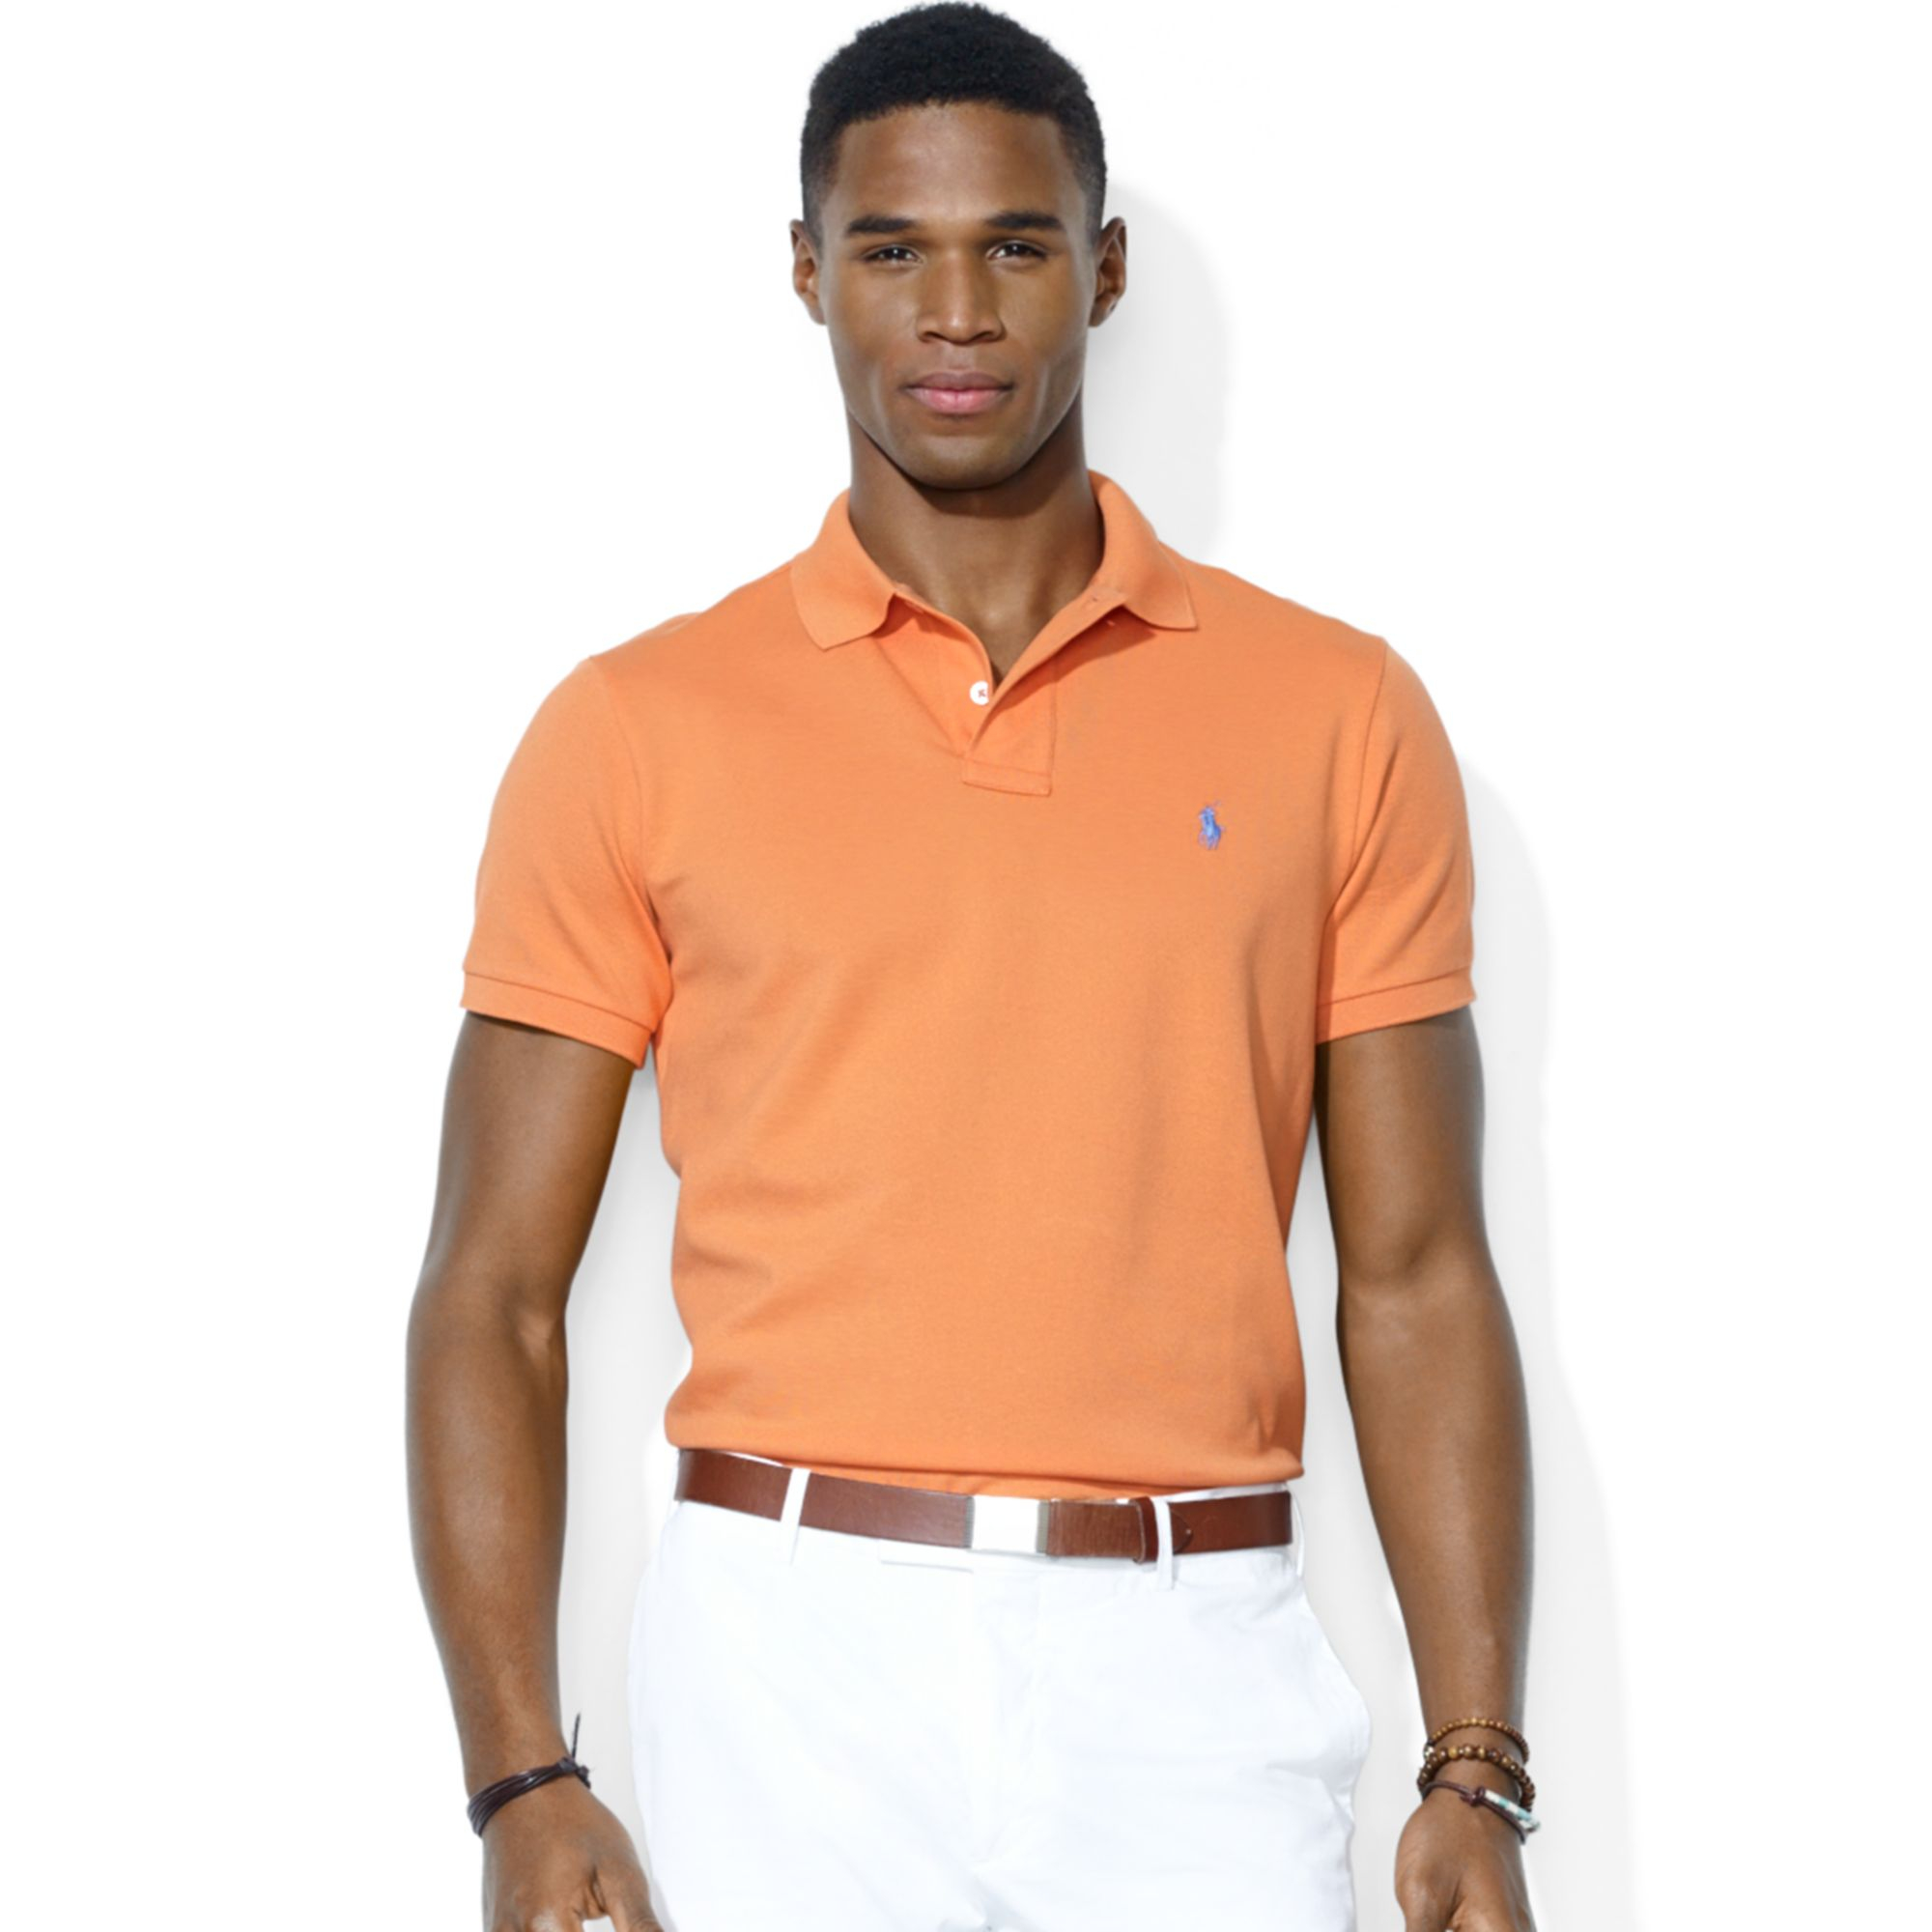 Lyst polo ralph lauren polo customfit stretchmesh polo for Expensive polo shirt brands